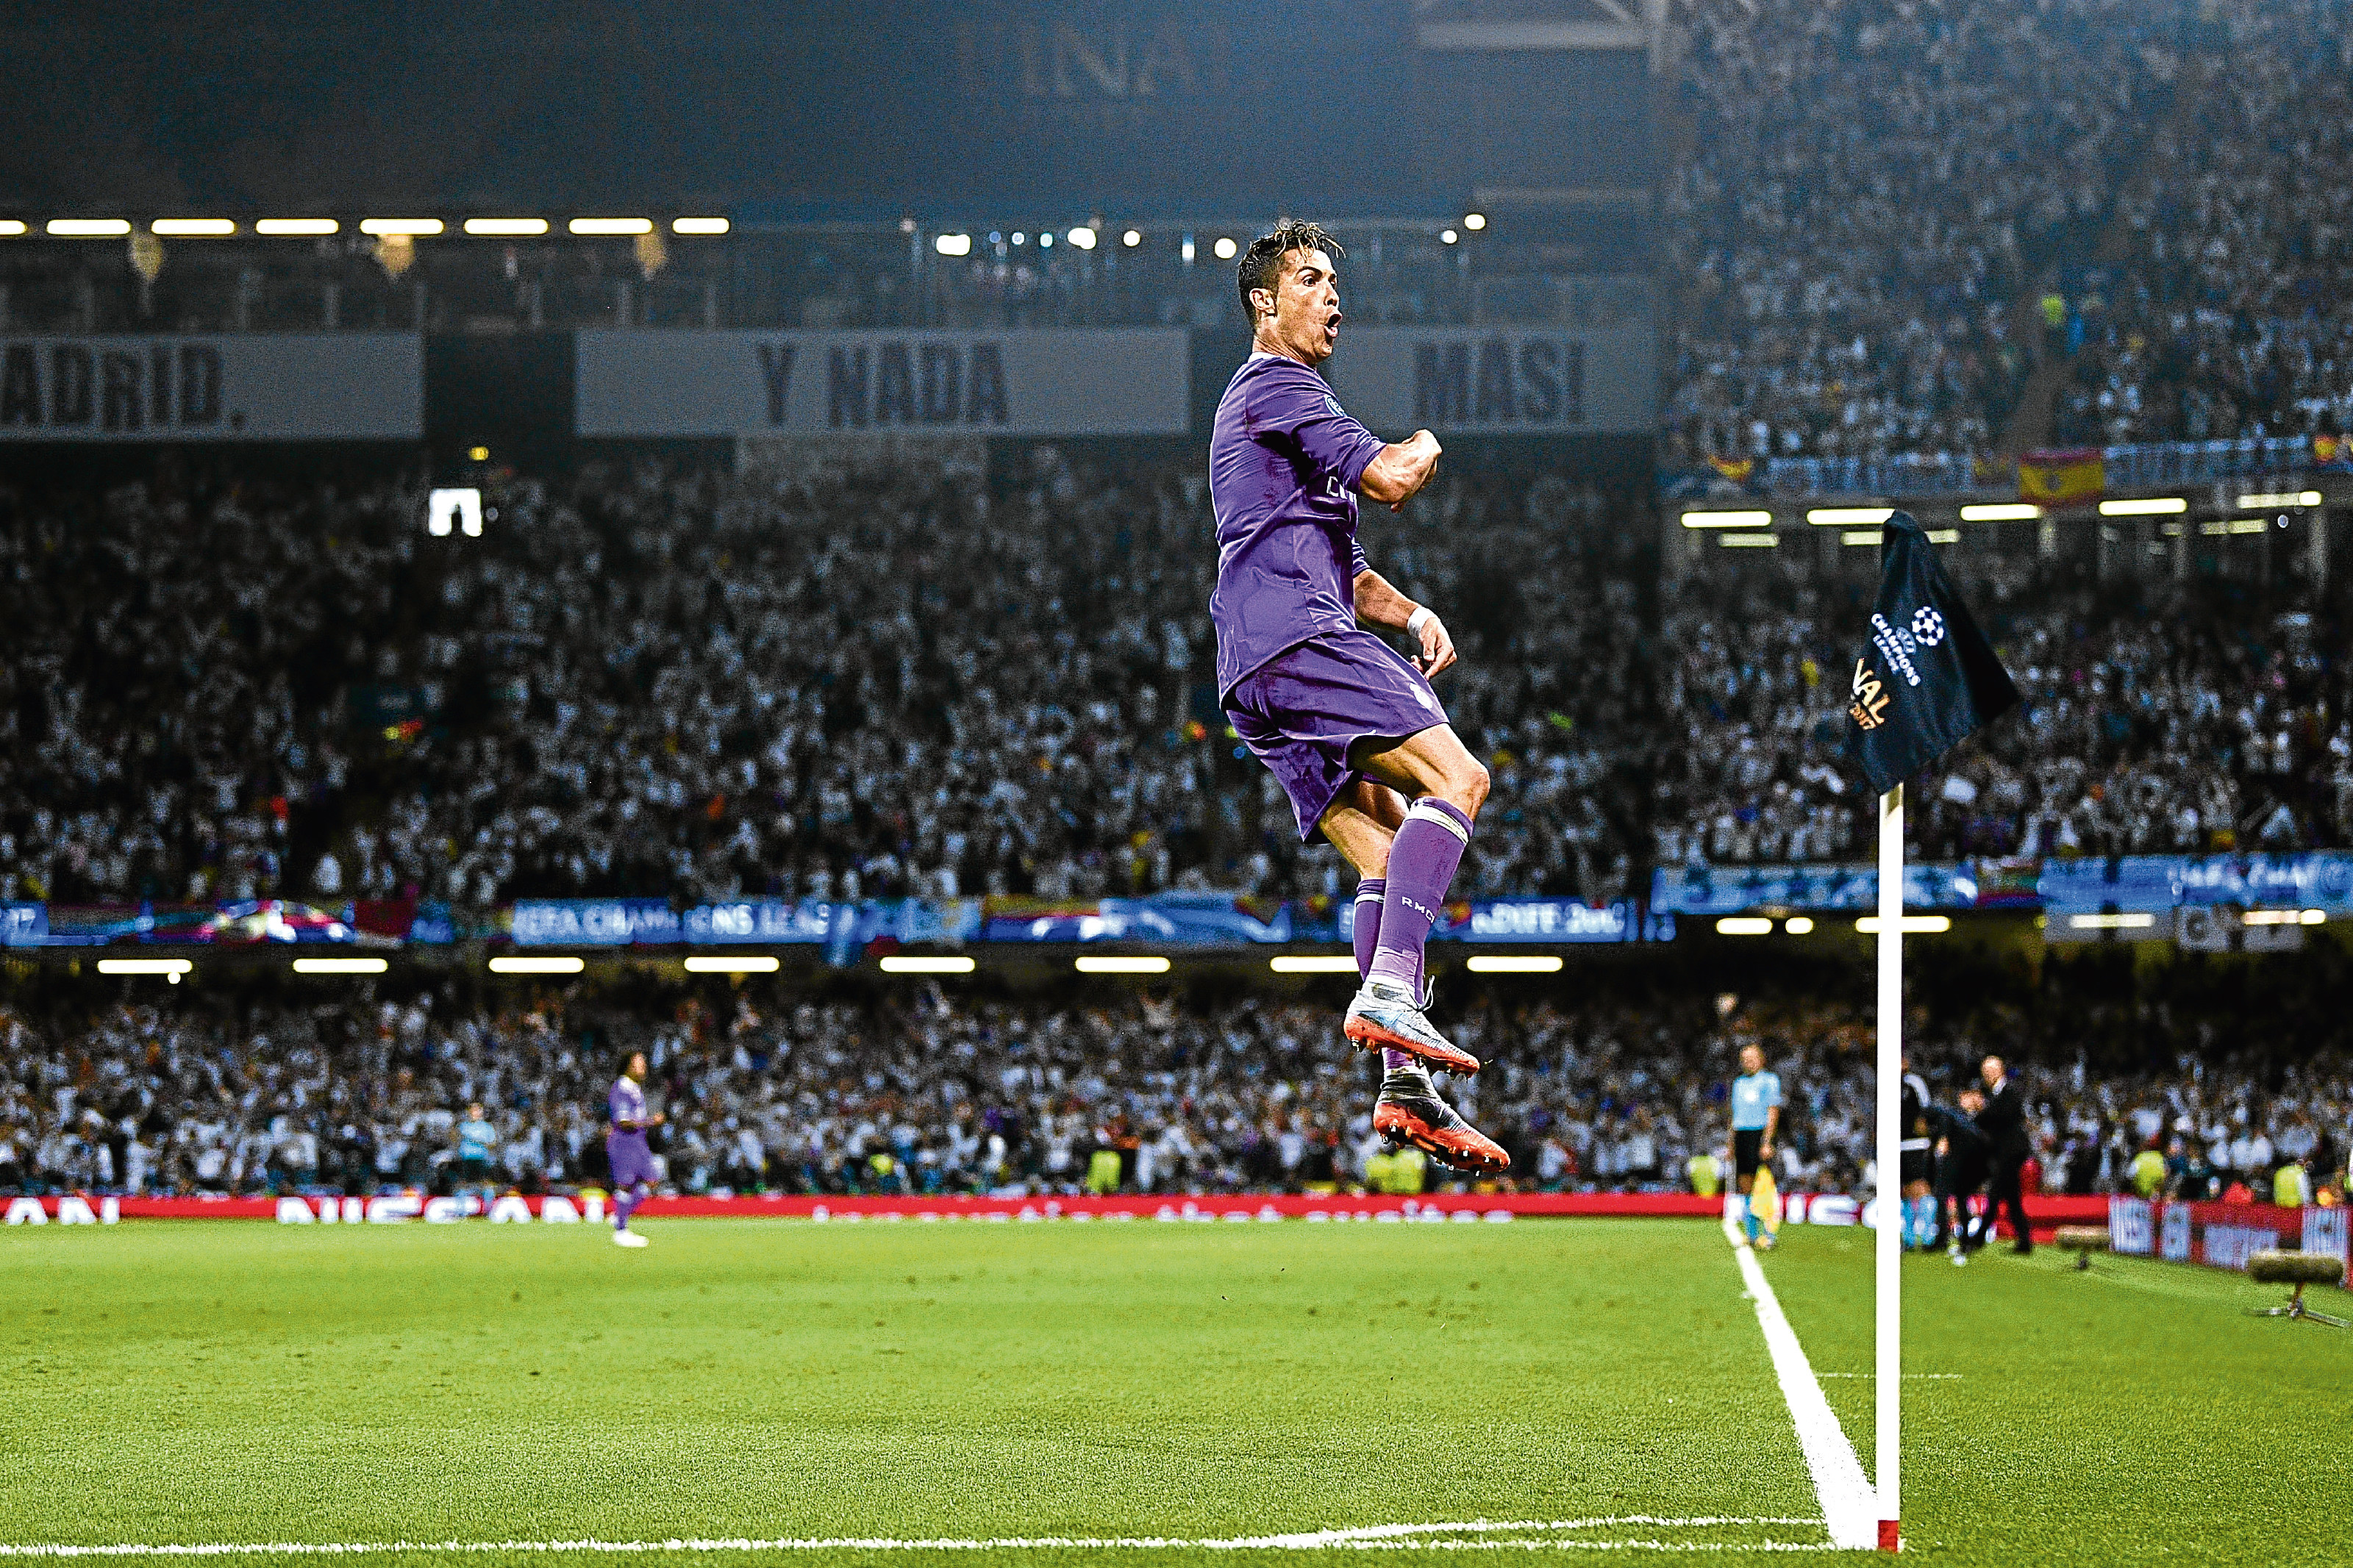 Cristiano Ronaldo celebrates after scoring Real's first goal during the UEFA Champions League Final.